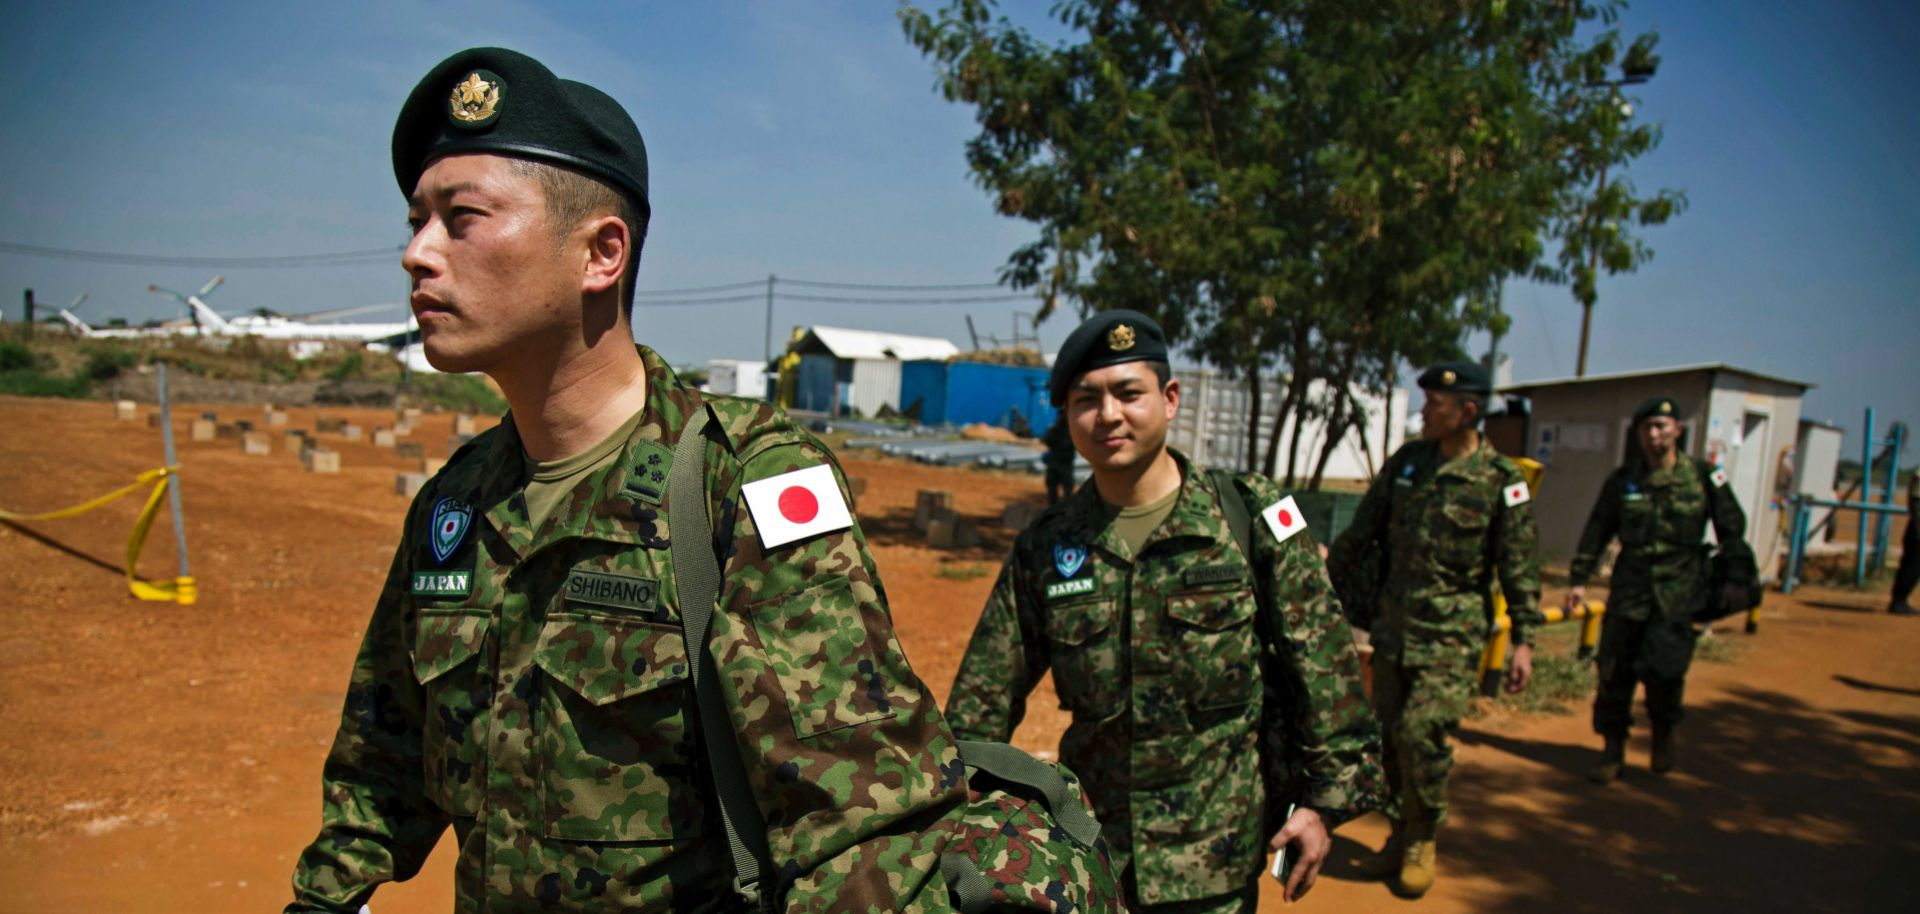 Members of Japan's Self-Defense Forces have more freedom now than they have had in the past to aid allies.